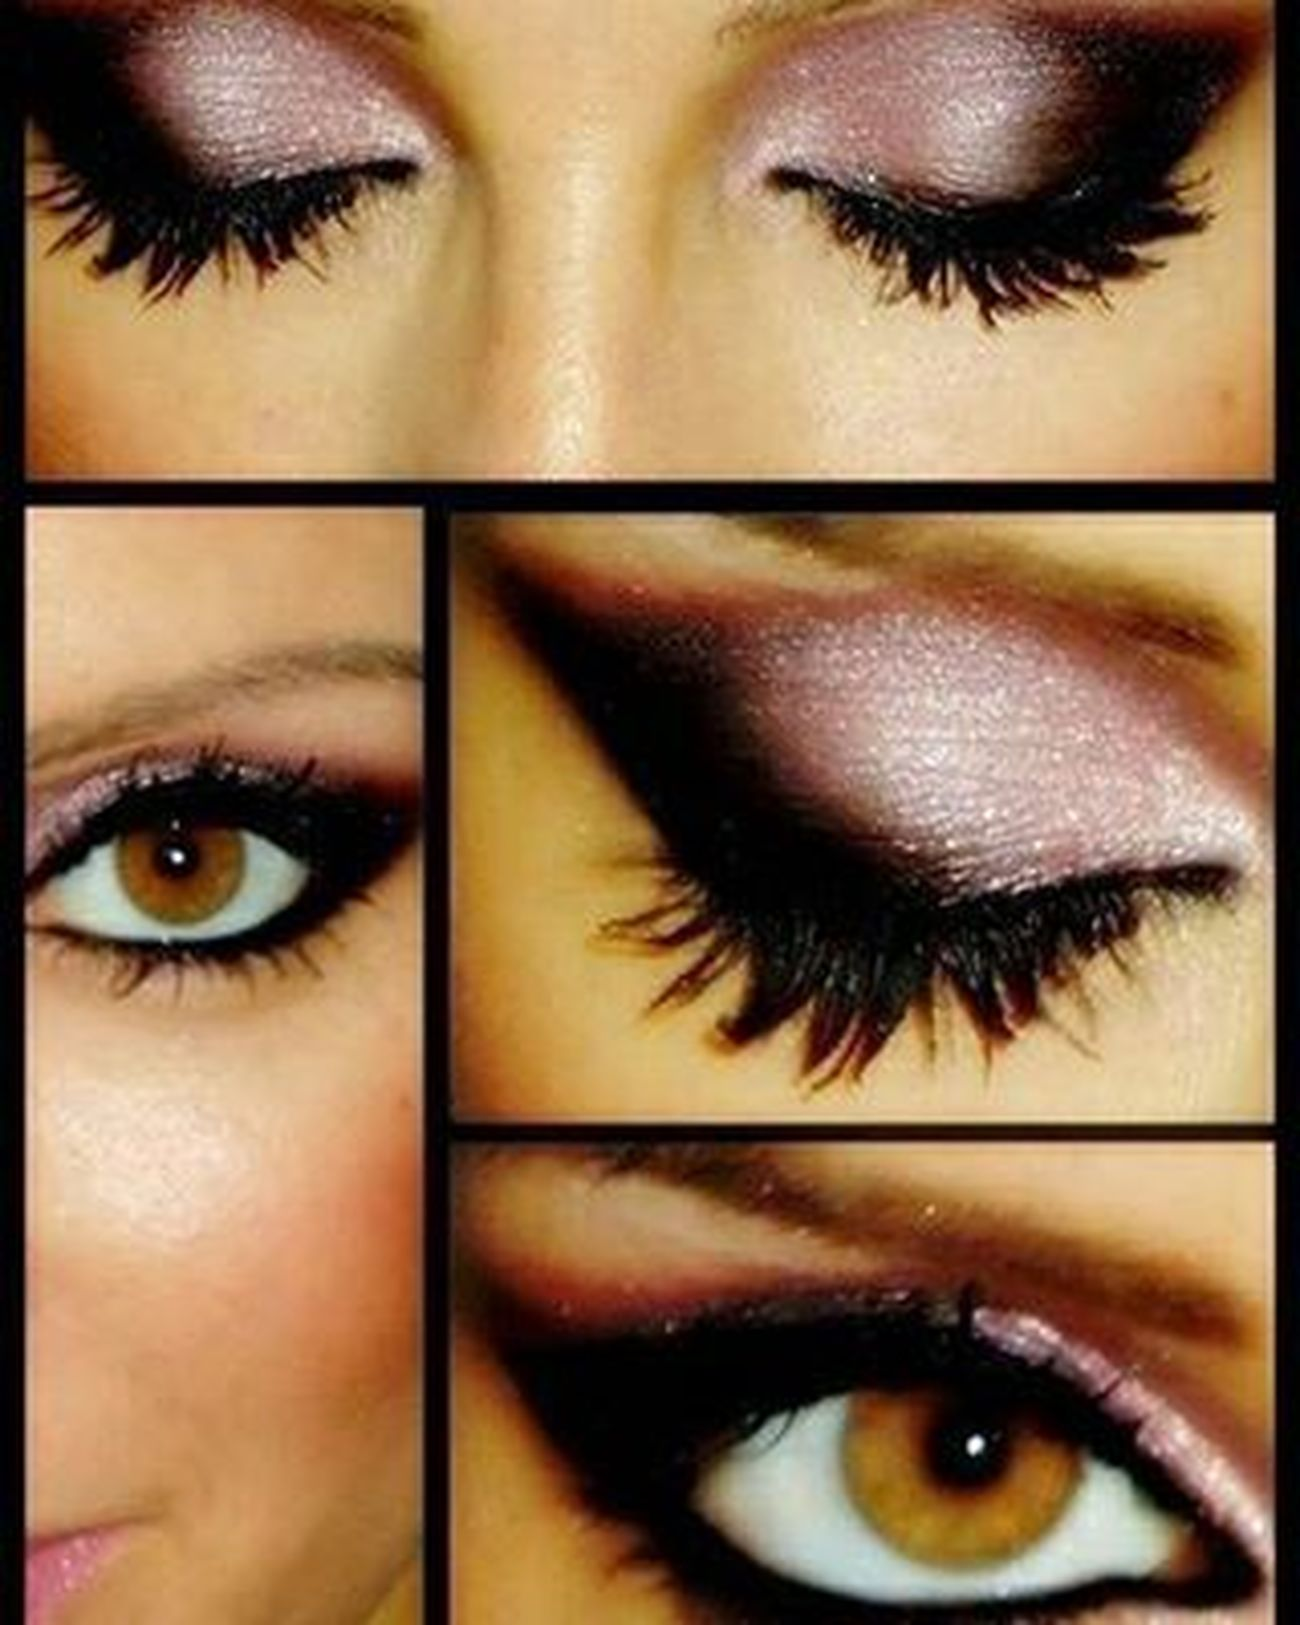 Theeyeshaveit Eyes Eyemakeup Eyeshadow Eyecolor Makeup Smokeyeye